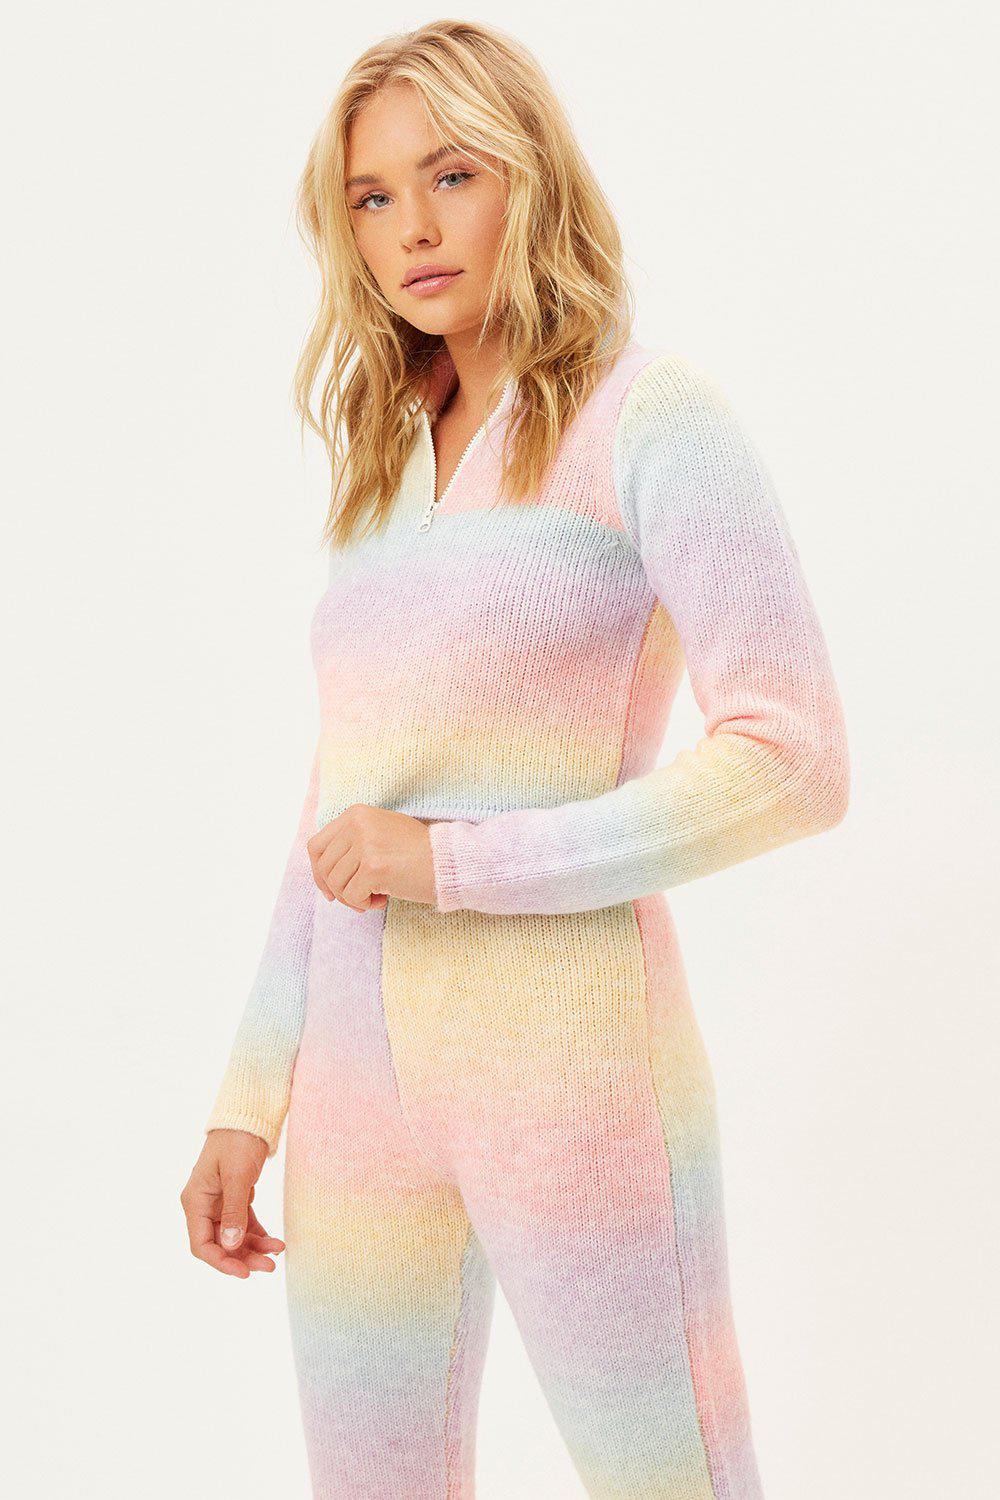 Bowie Cropped Knit Sweater - Cotton Candy 3